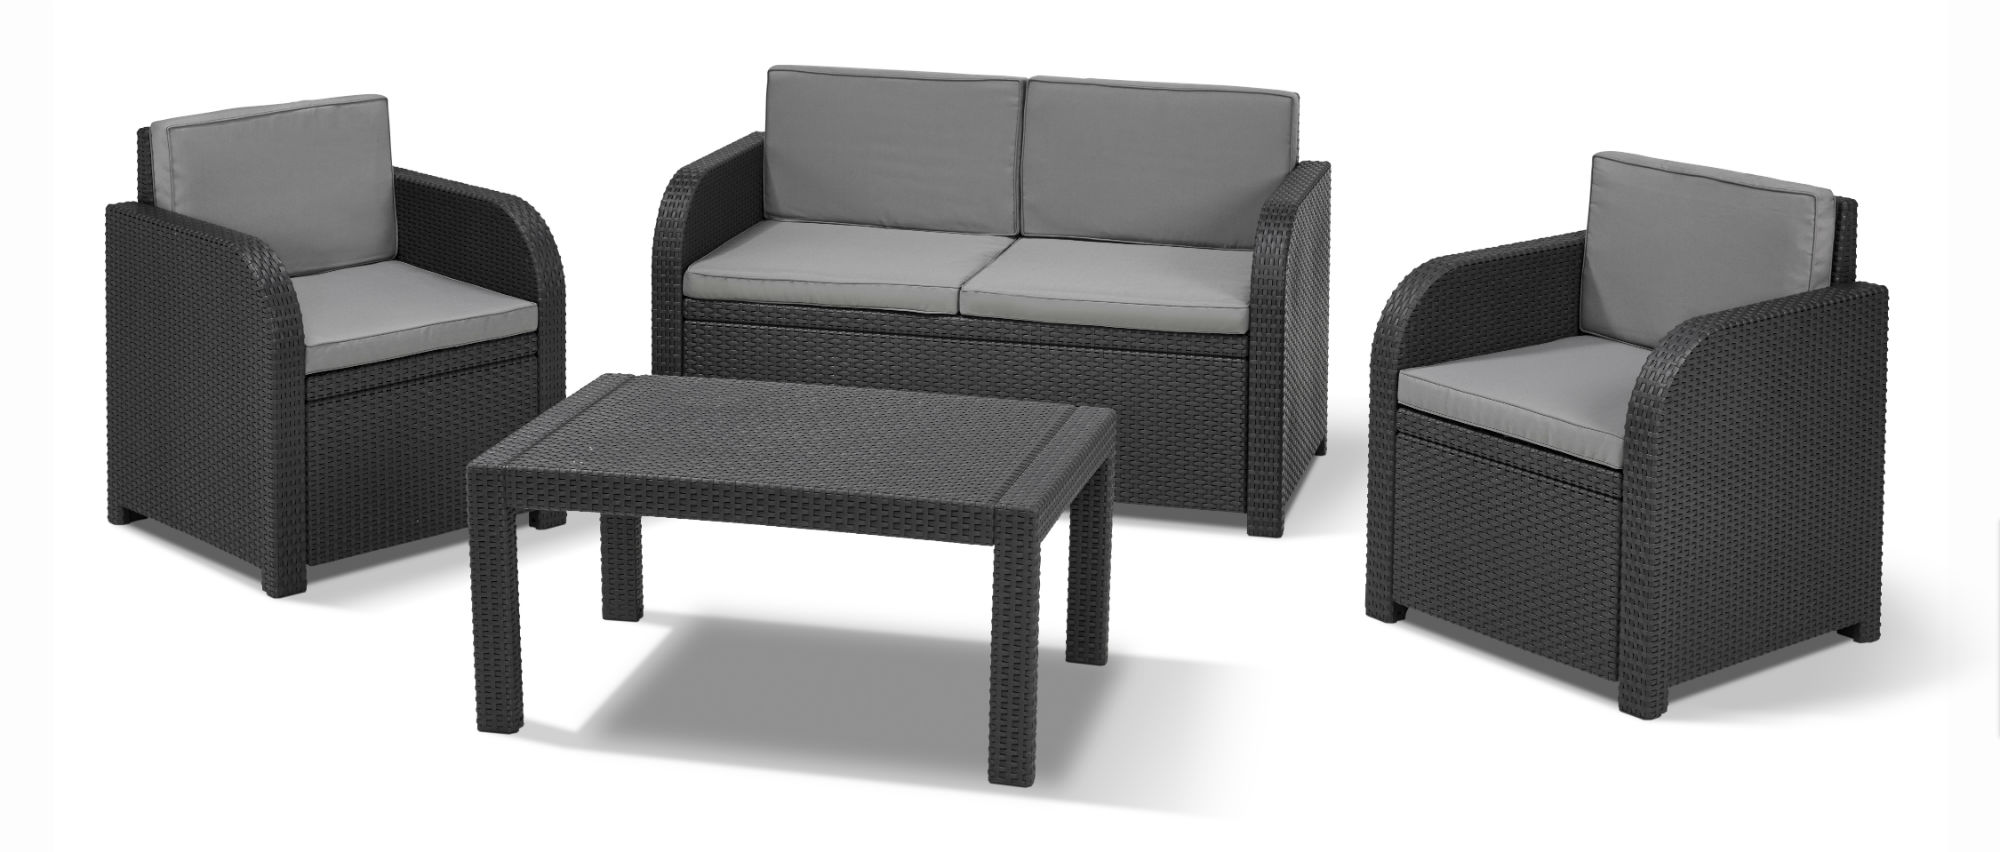 salon de jardin allibert royal sofa id e de canap et meuble maison. Black Bedroom Furniture Sets. Home Design Ideas